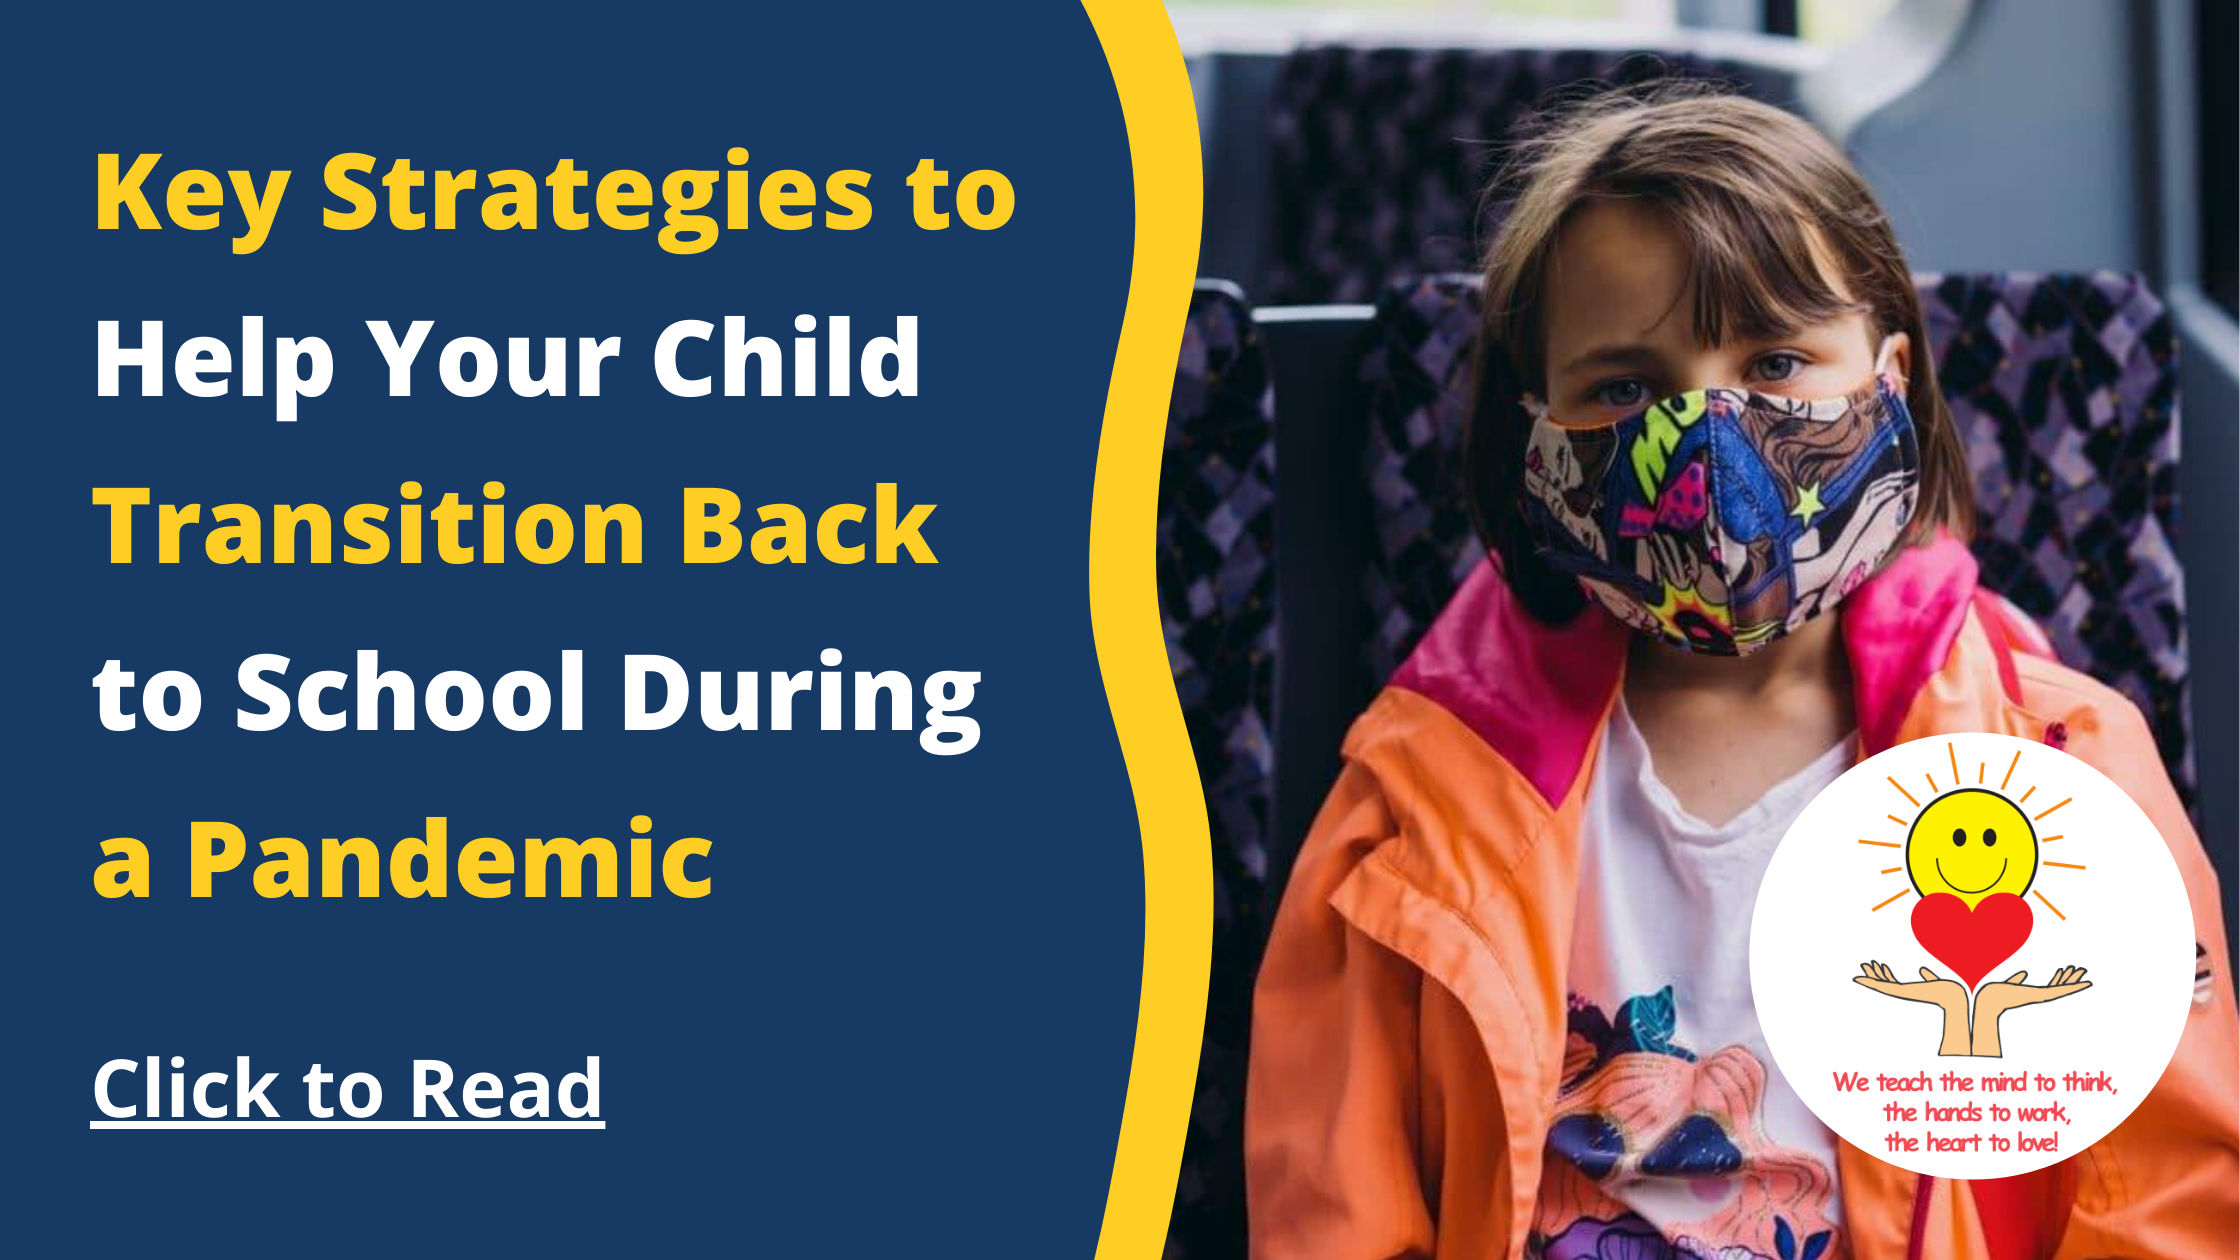 Key Strategies to Help Your Child Transition Back to School During a Pandemic